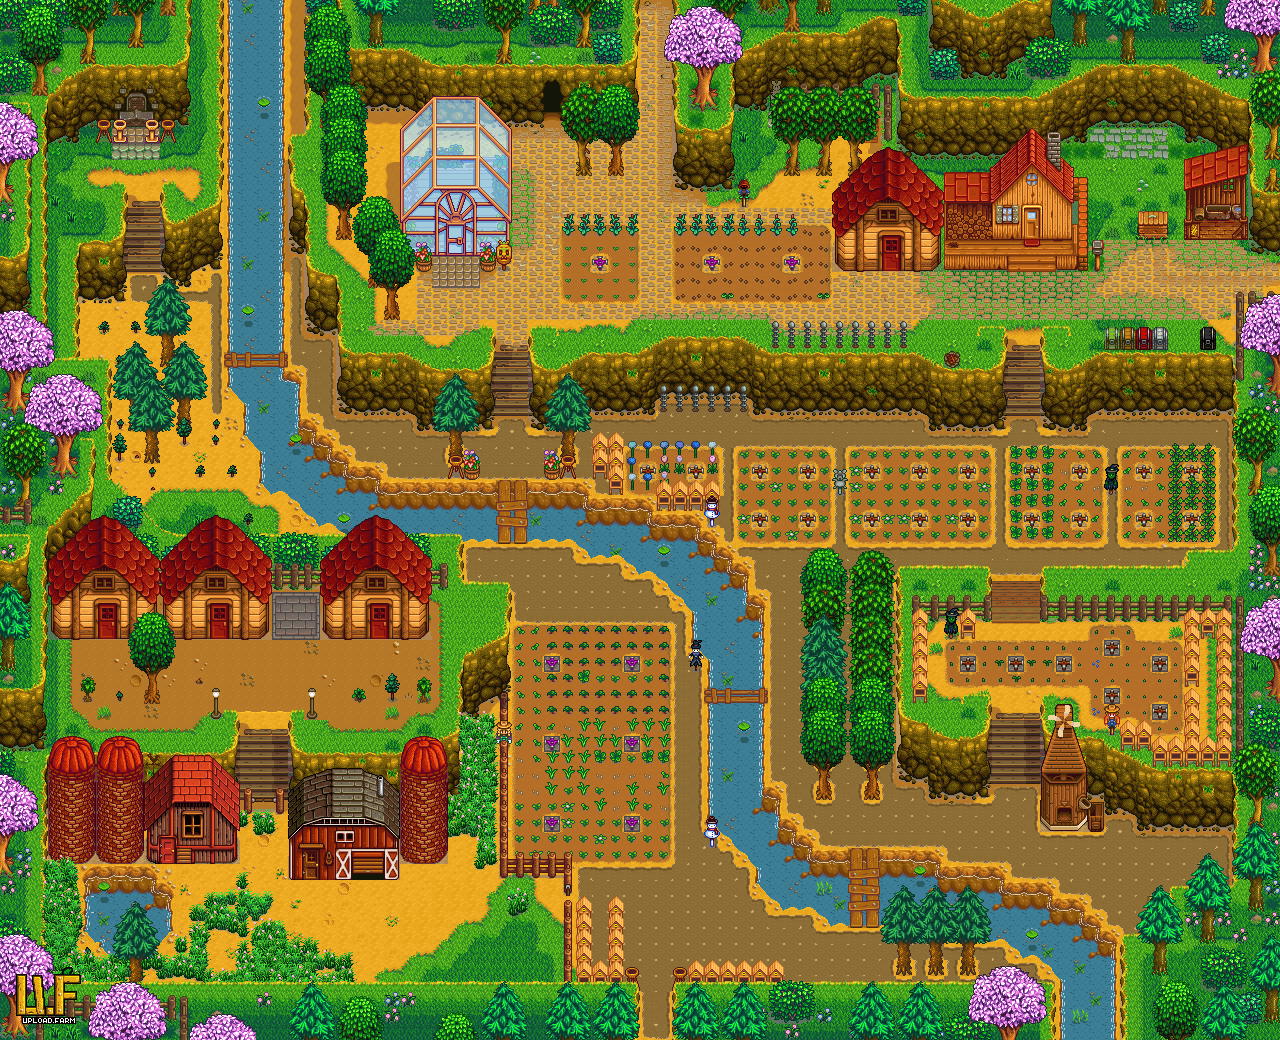 Download Stardew Valley Hilltop Farm Layout Full Size Png Image Pngkit